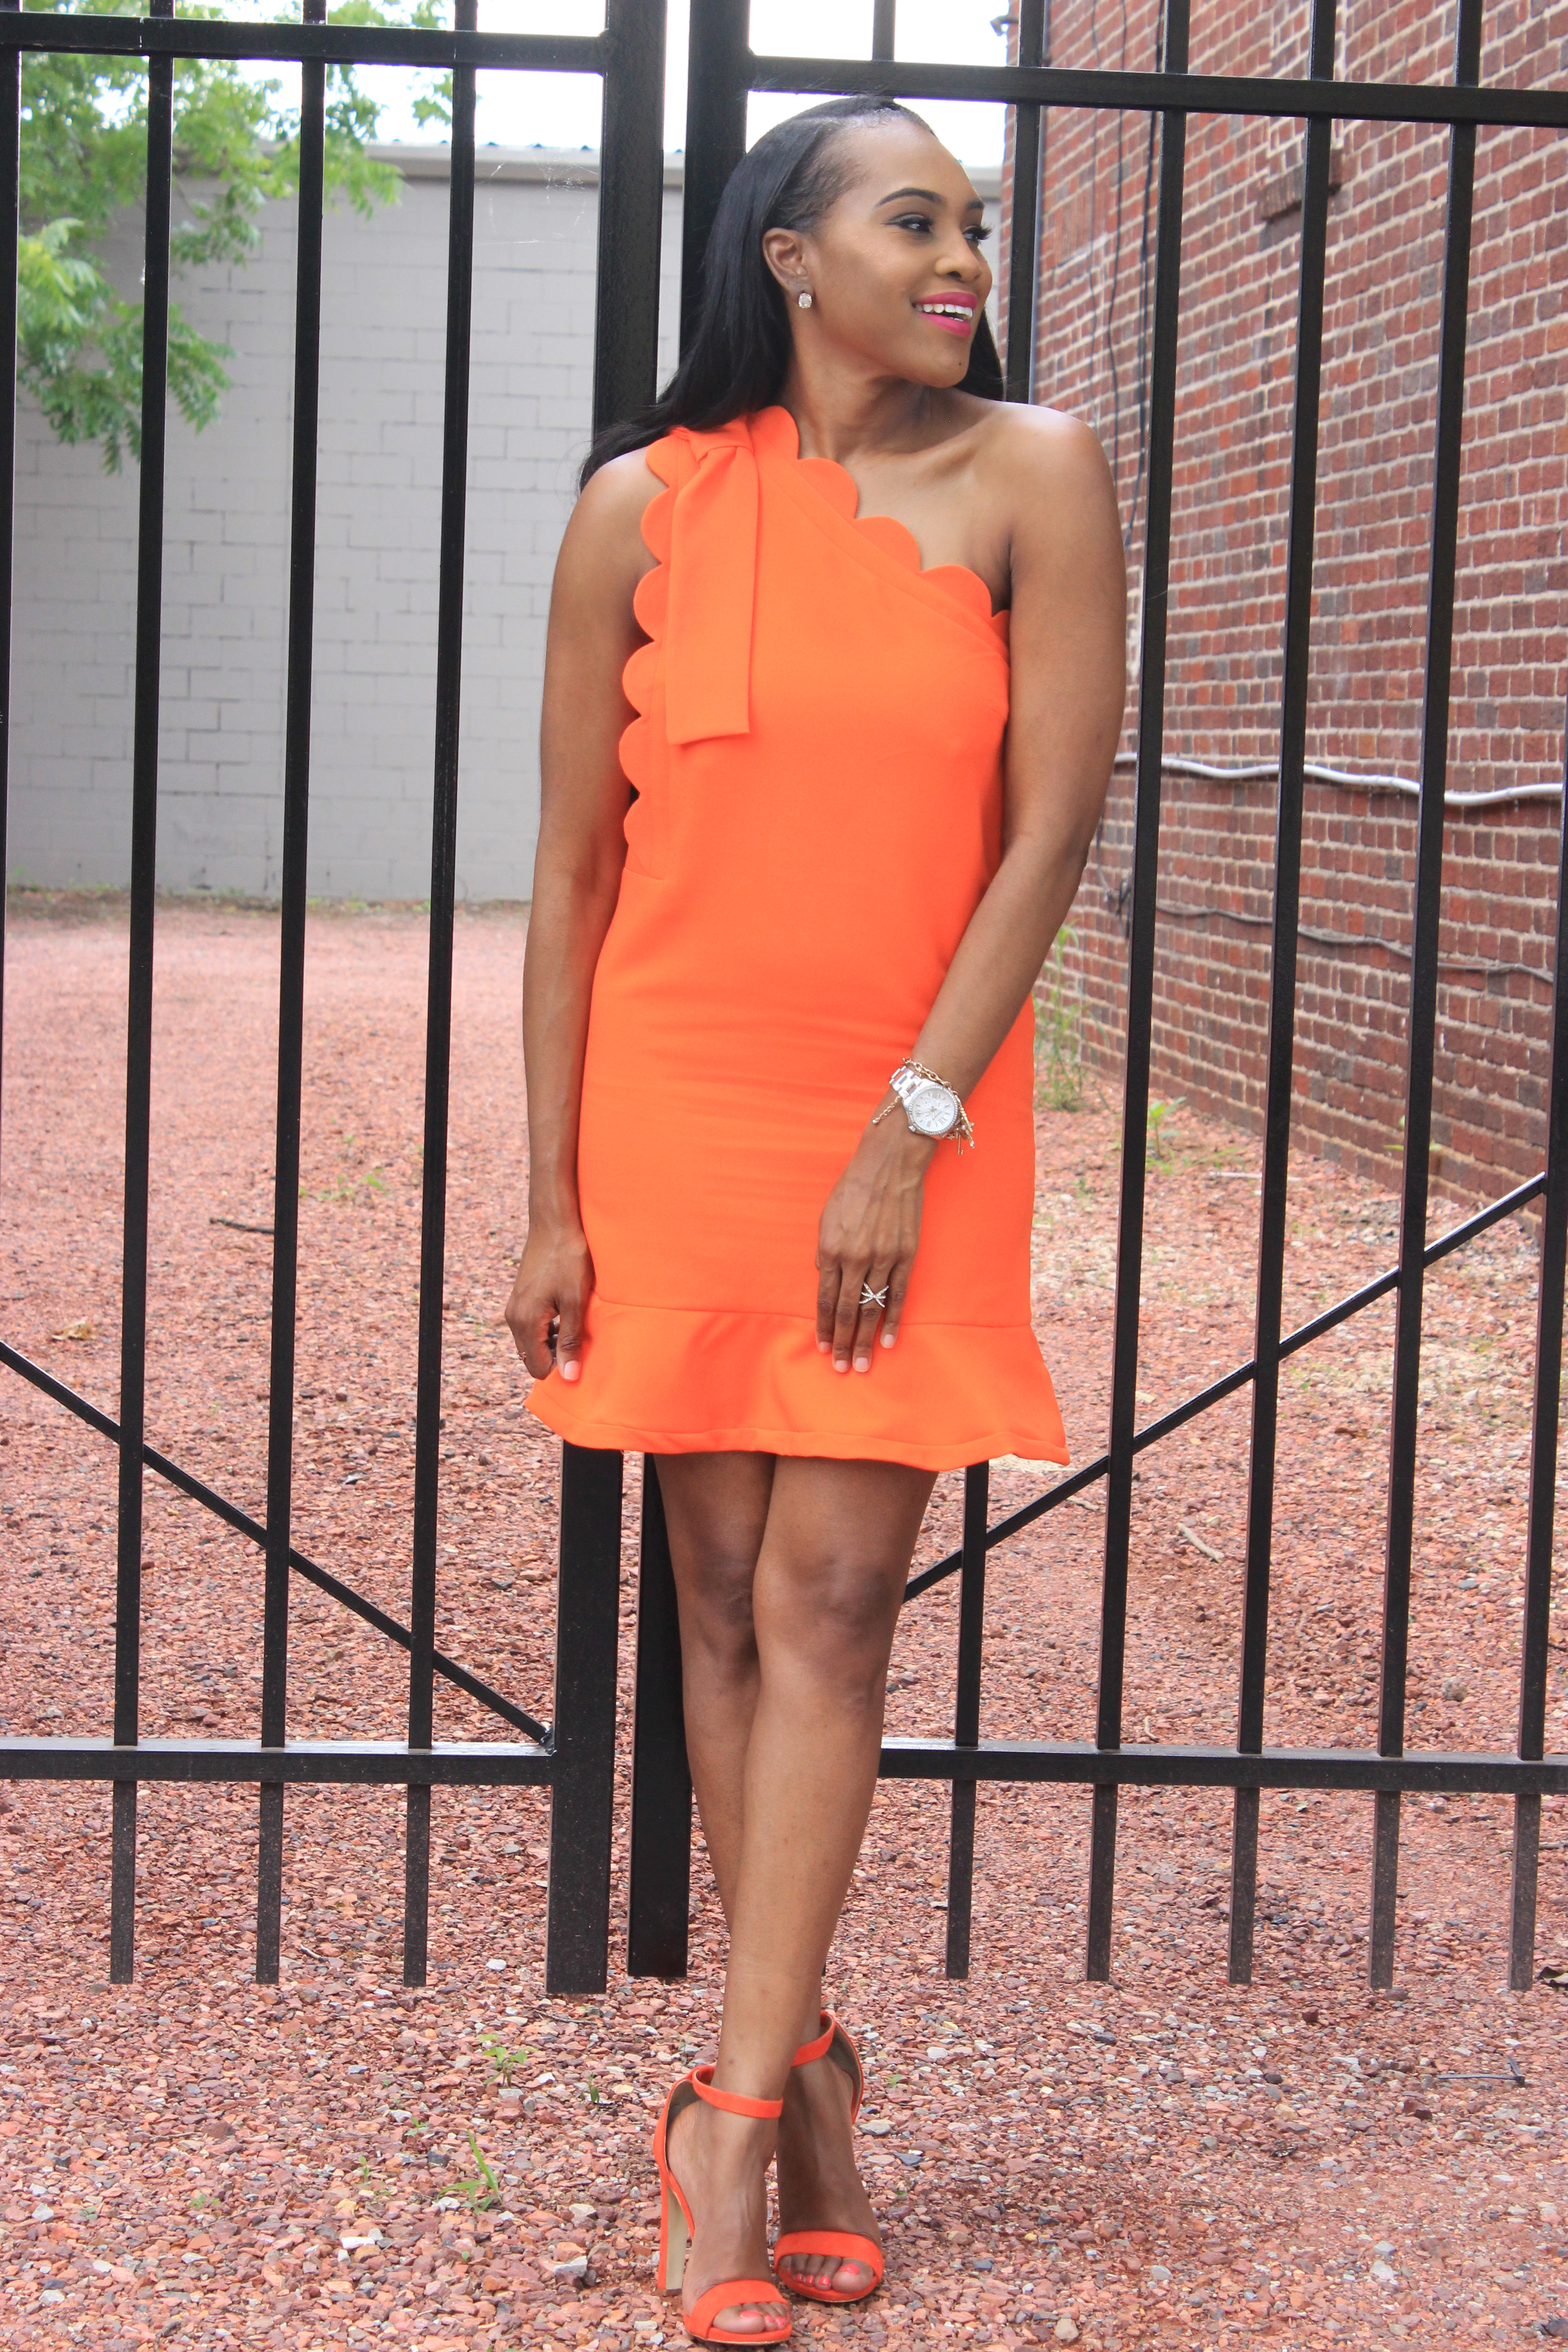 Style-Files-Orange-One Shoulder Dress-with-Bow and-Scallop-Trim-Victoria Beckham-for-Target-How-to-wear-victoria-beckham-for-target-Victoria-Beckham-for-Target-Review-Justfab-orange-kati-ankle-strap-sandals-oohlalablog-7